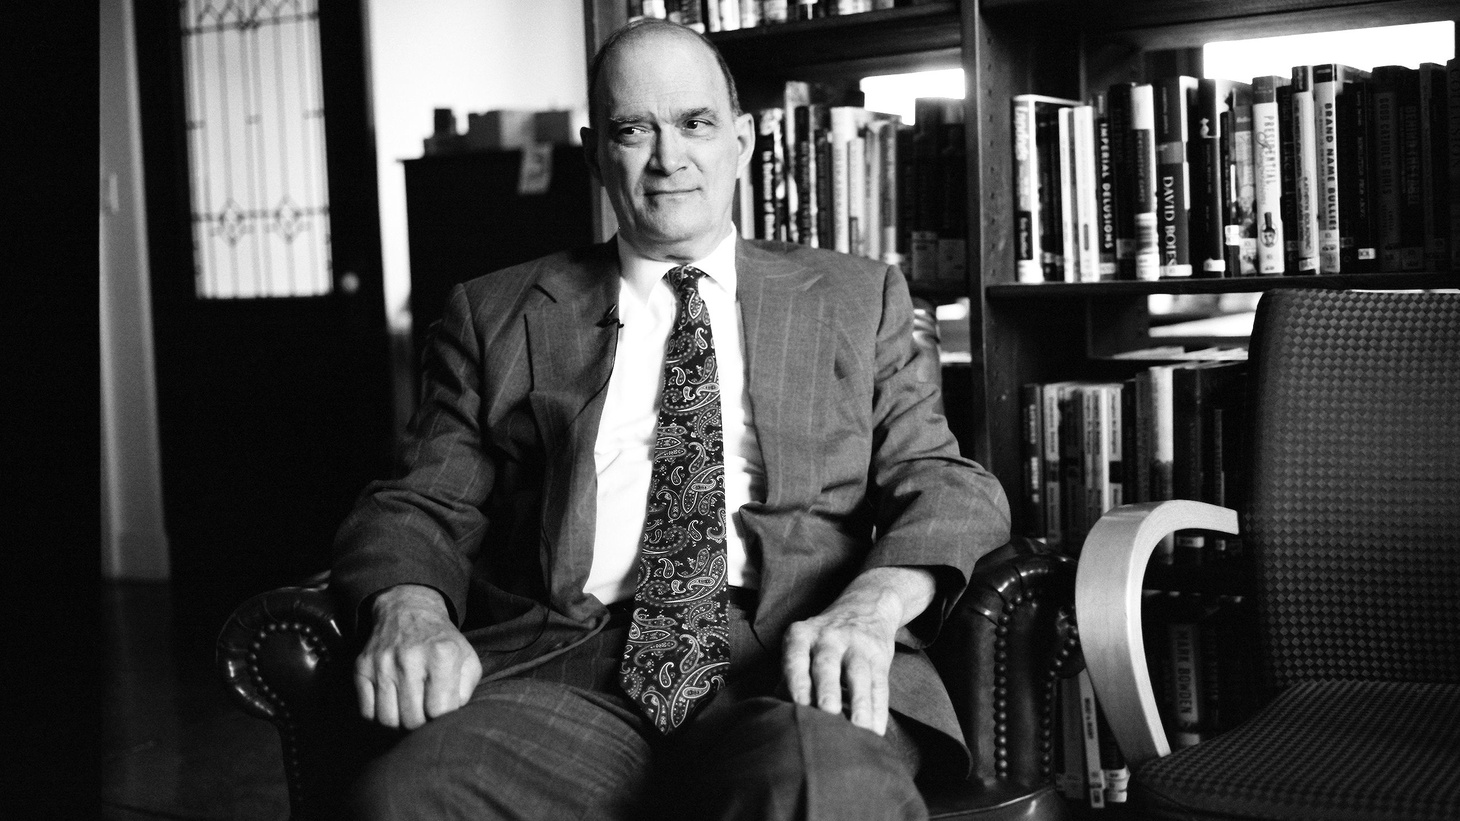 William Binney sitting in the offices of Democracy Now! in New York City on May 2012, prior to appearing with hosts Amy Goodman, Juan Gonzalez, and guest Jacob Appelbaum